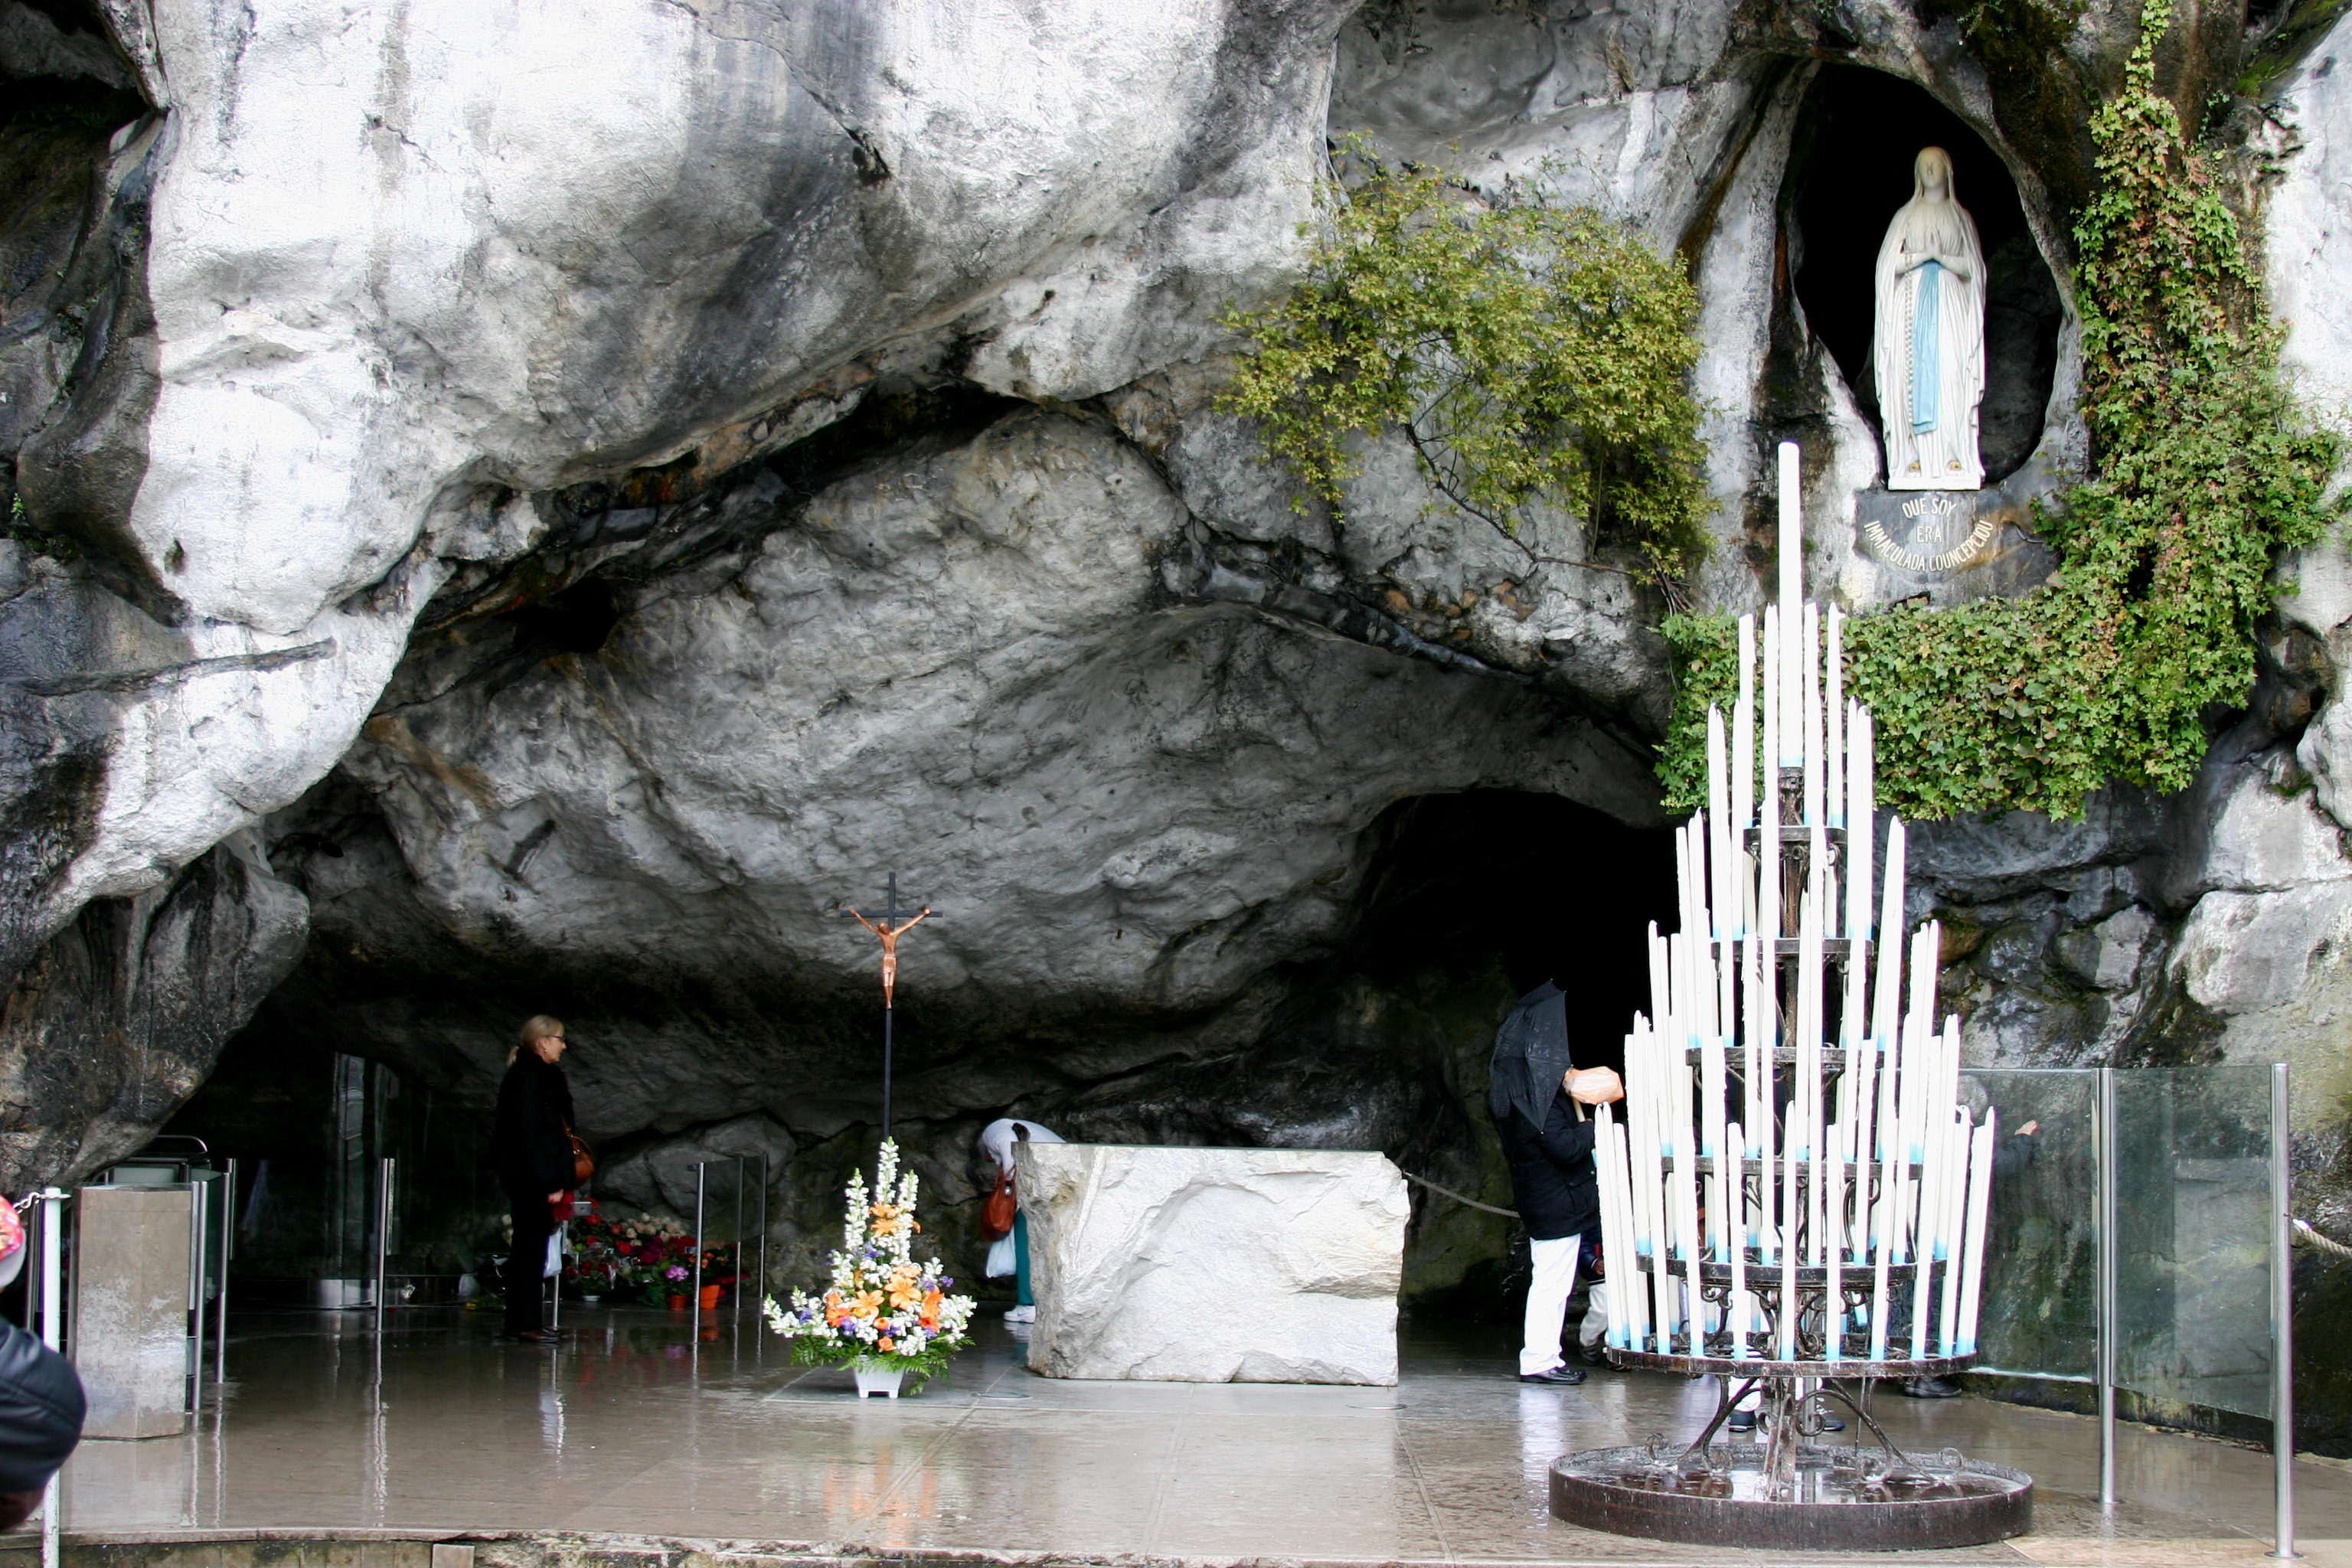 Grotto_of_Lourdes_-_Lourdes_2014_(3)